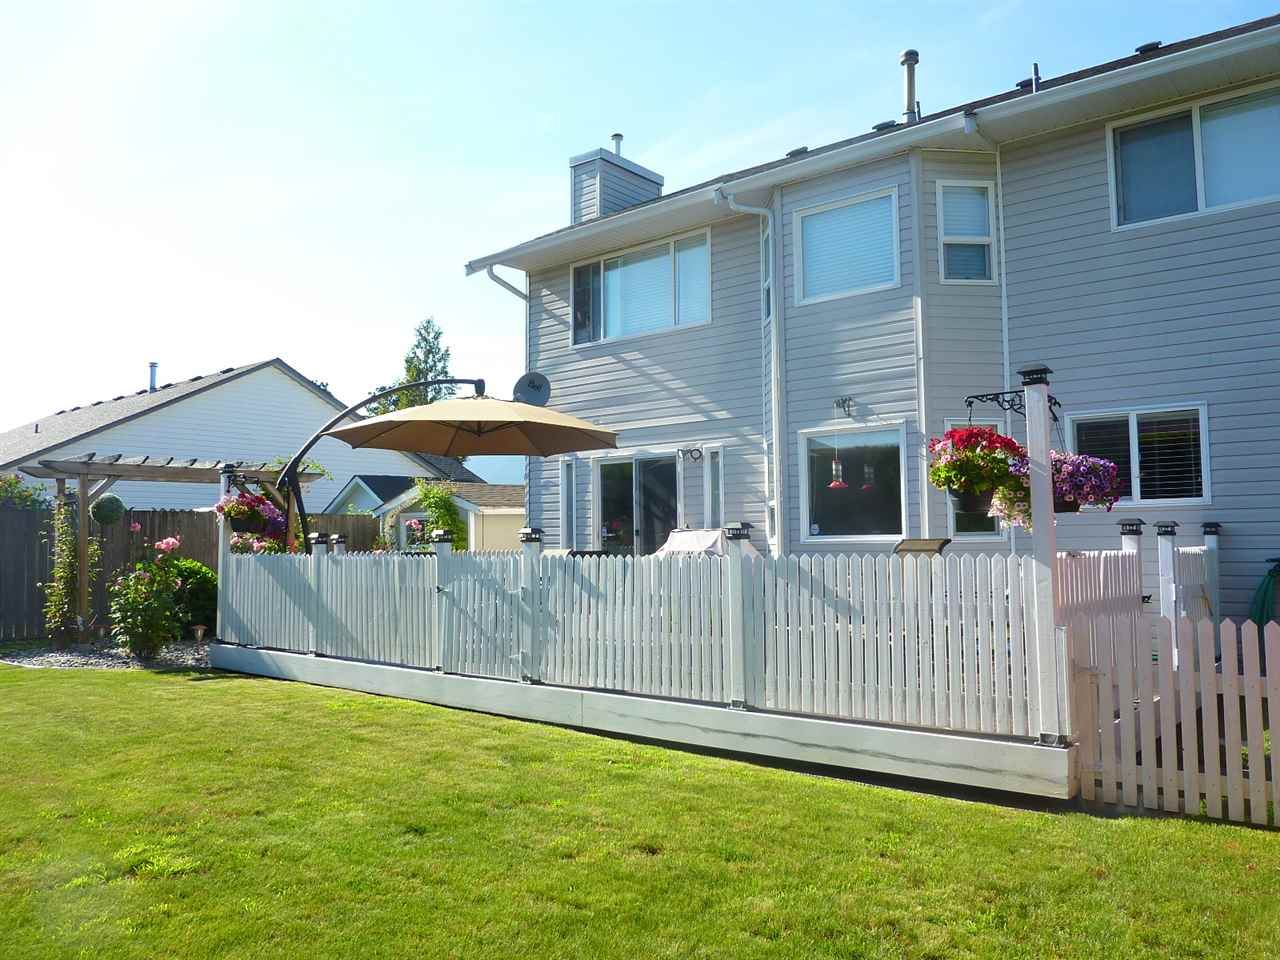 Photo 19: 7474 ARBUTUS Drive: Agassiz House for sale : MLS® # R2185830